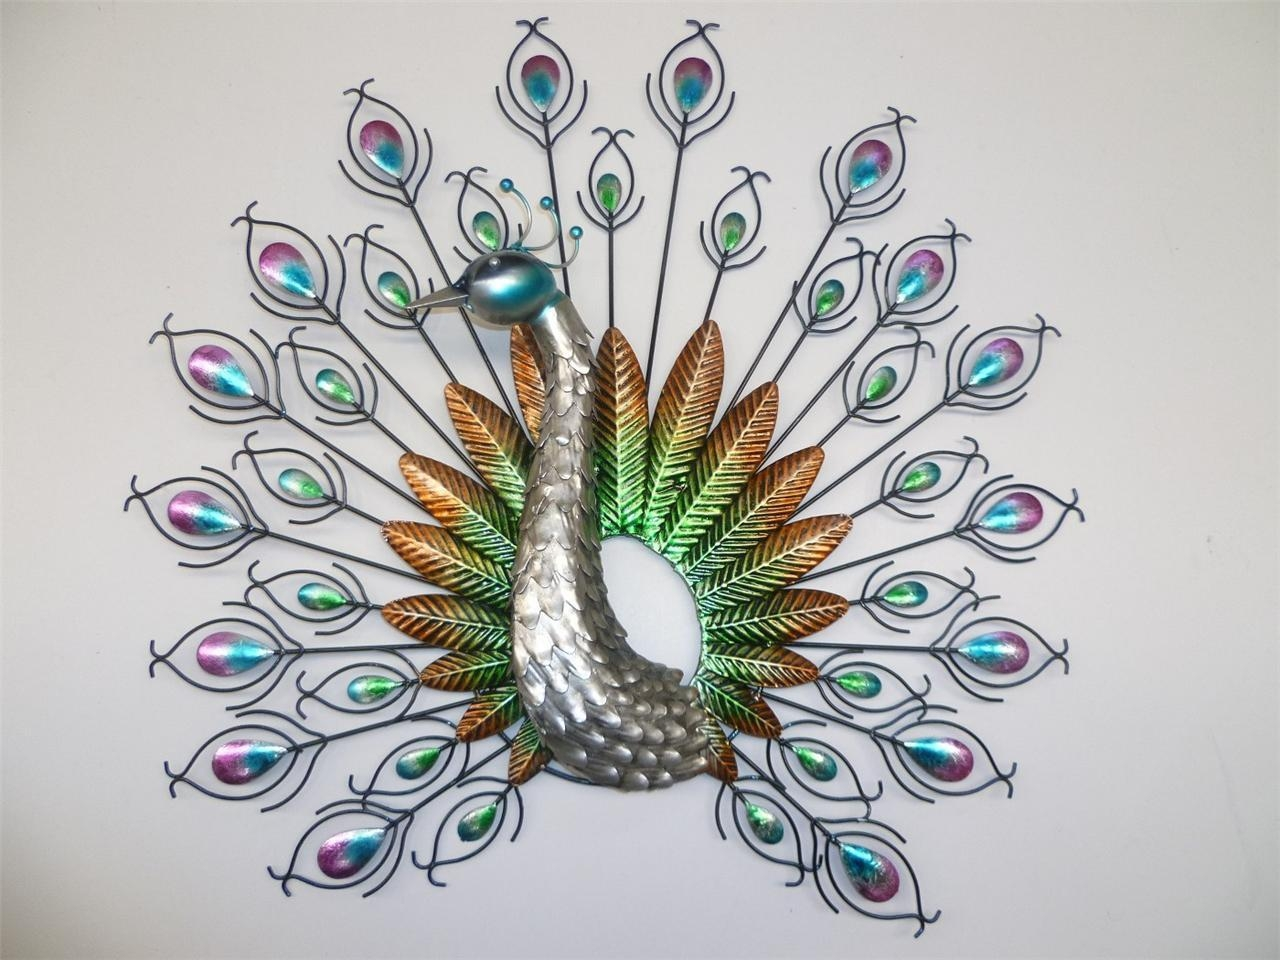 Wall Art 3D Metal Decor | Wallartideas Pertaining To Peacock Metal Wall Art (View 10 of 20)